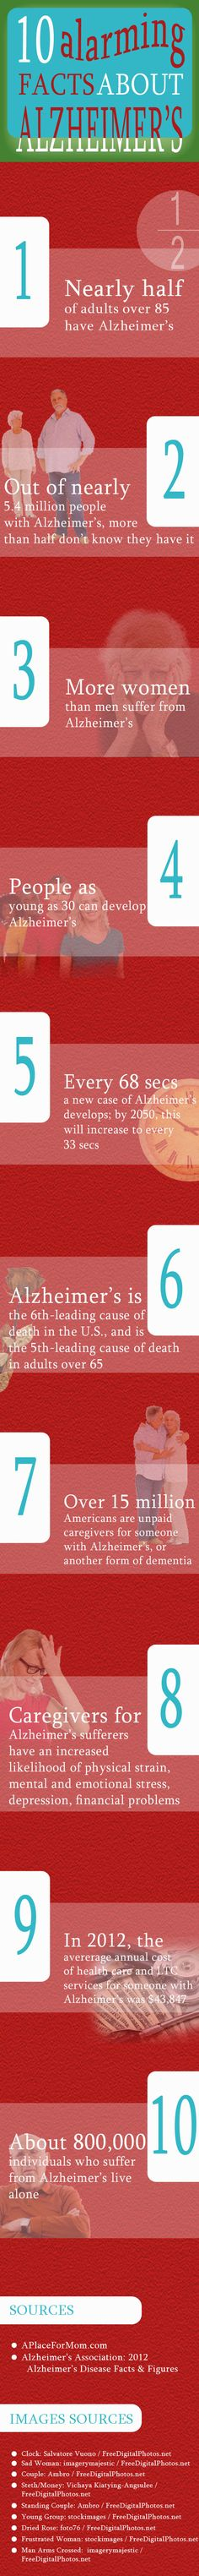 Facts about Alzheimer's. #Alzheimer'sInfoGraphic #Alzheimer'sDisease